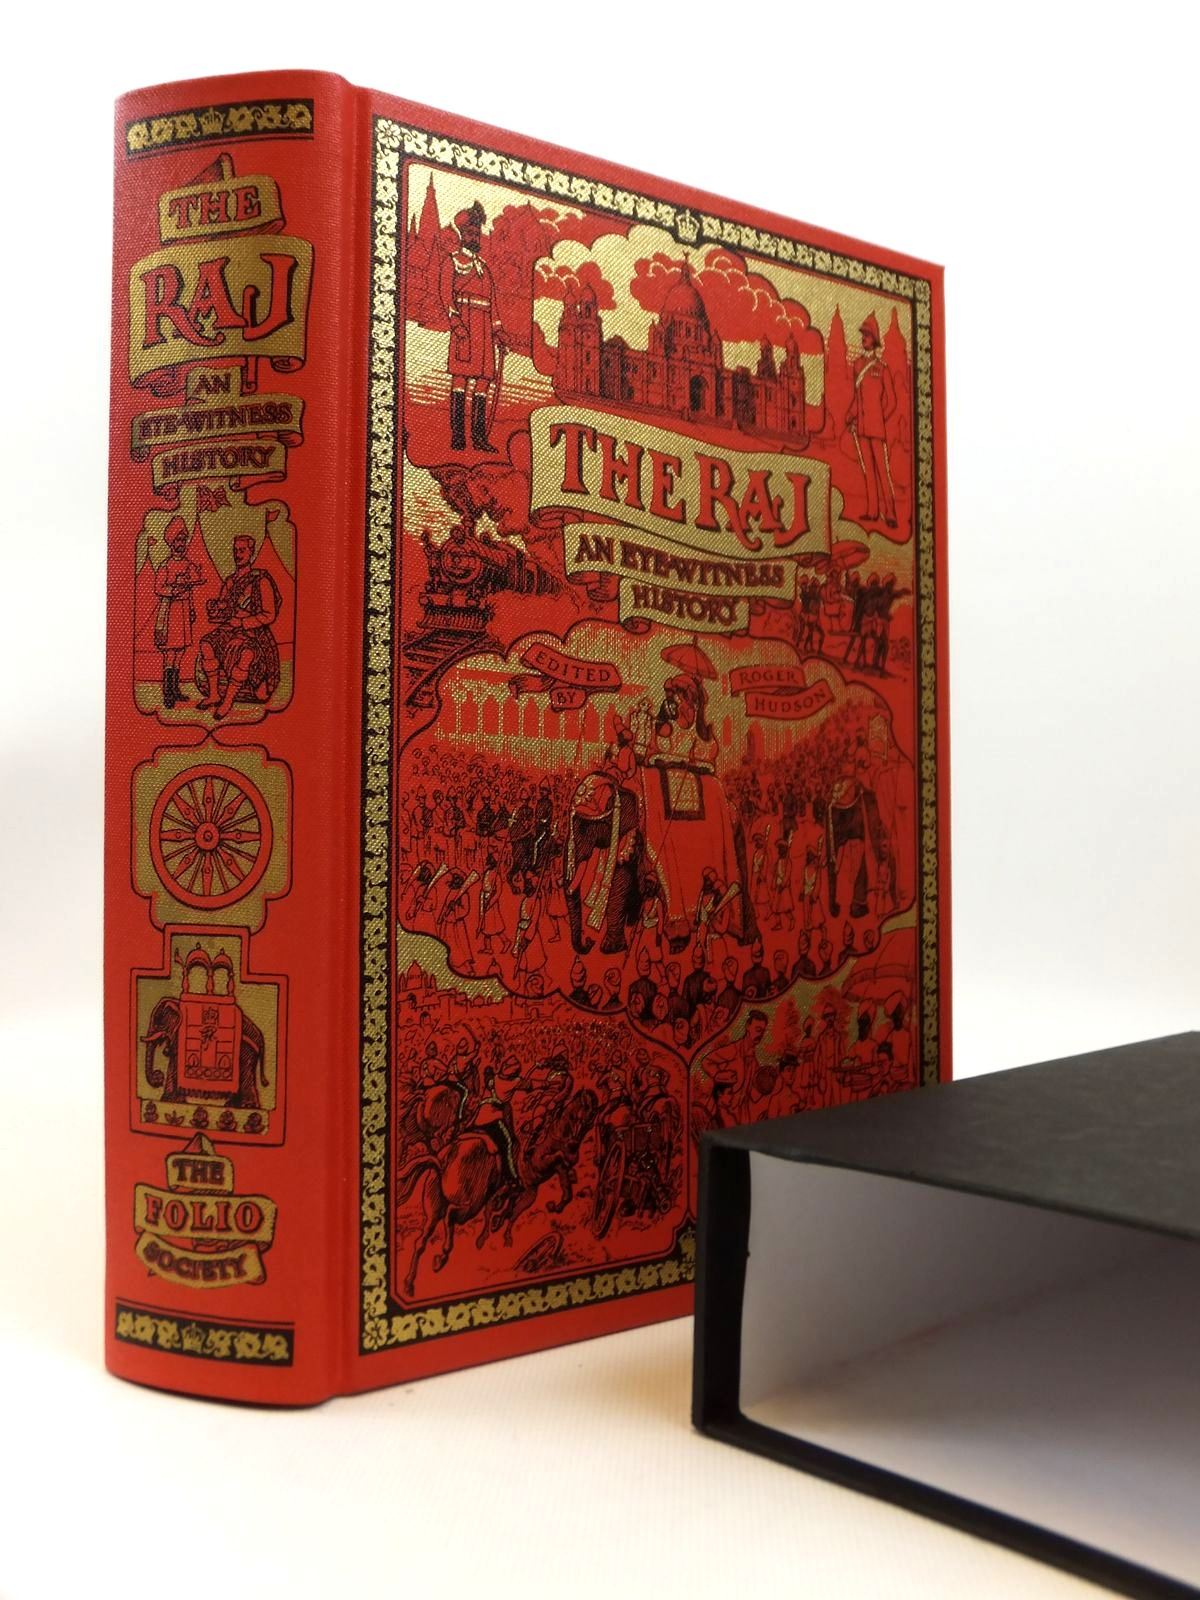 Photo of THE RAJ written by Hudson, Roger published by Folio Society (STOCK CODE: 1812600)  for sale by Stella & Rose's Books